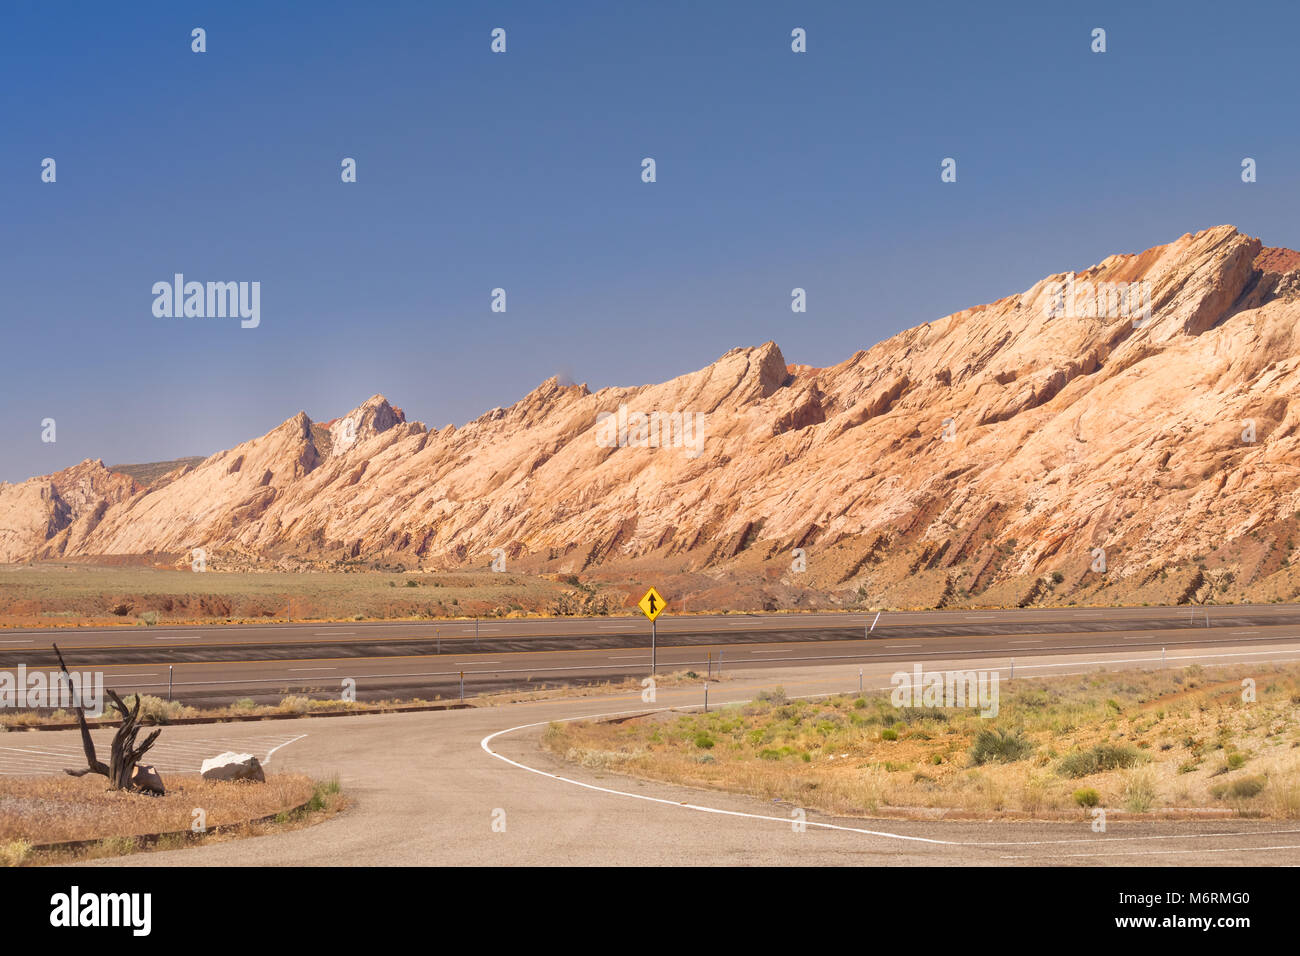 View of a highway in Utah; colorful rock formations in the background;  USA - Stock Image